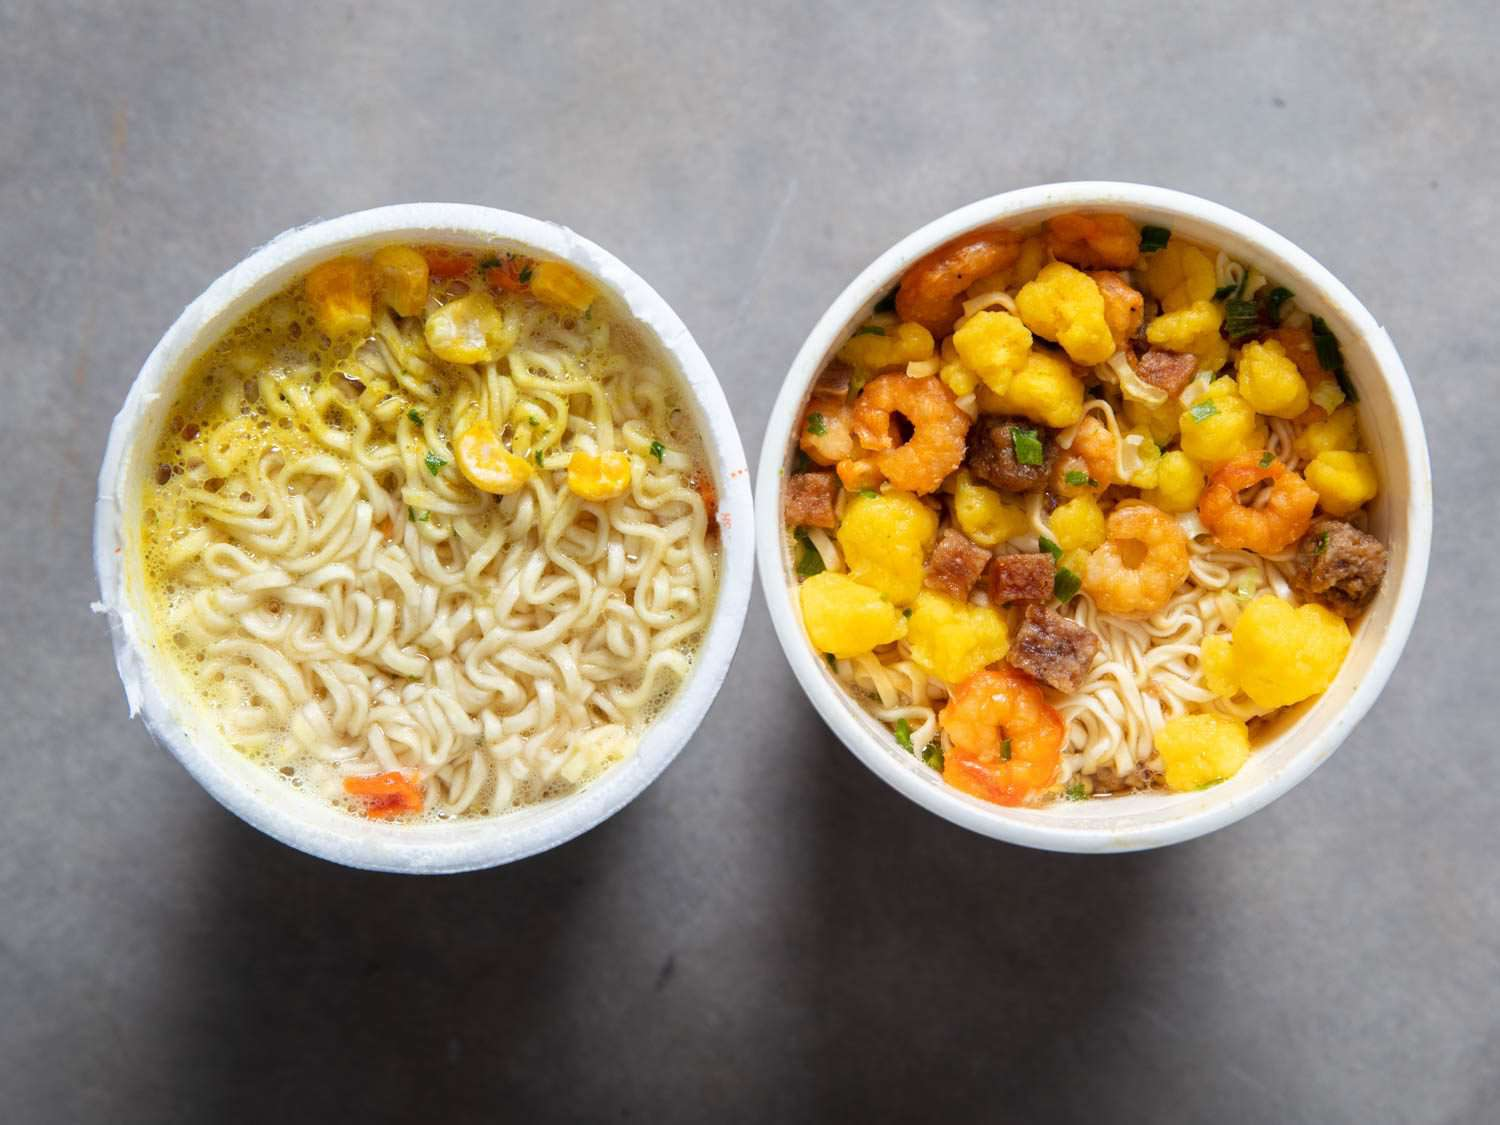 Overhead comparison shot of American Chicken Cup Noodles cup and Japanese